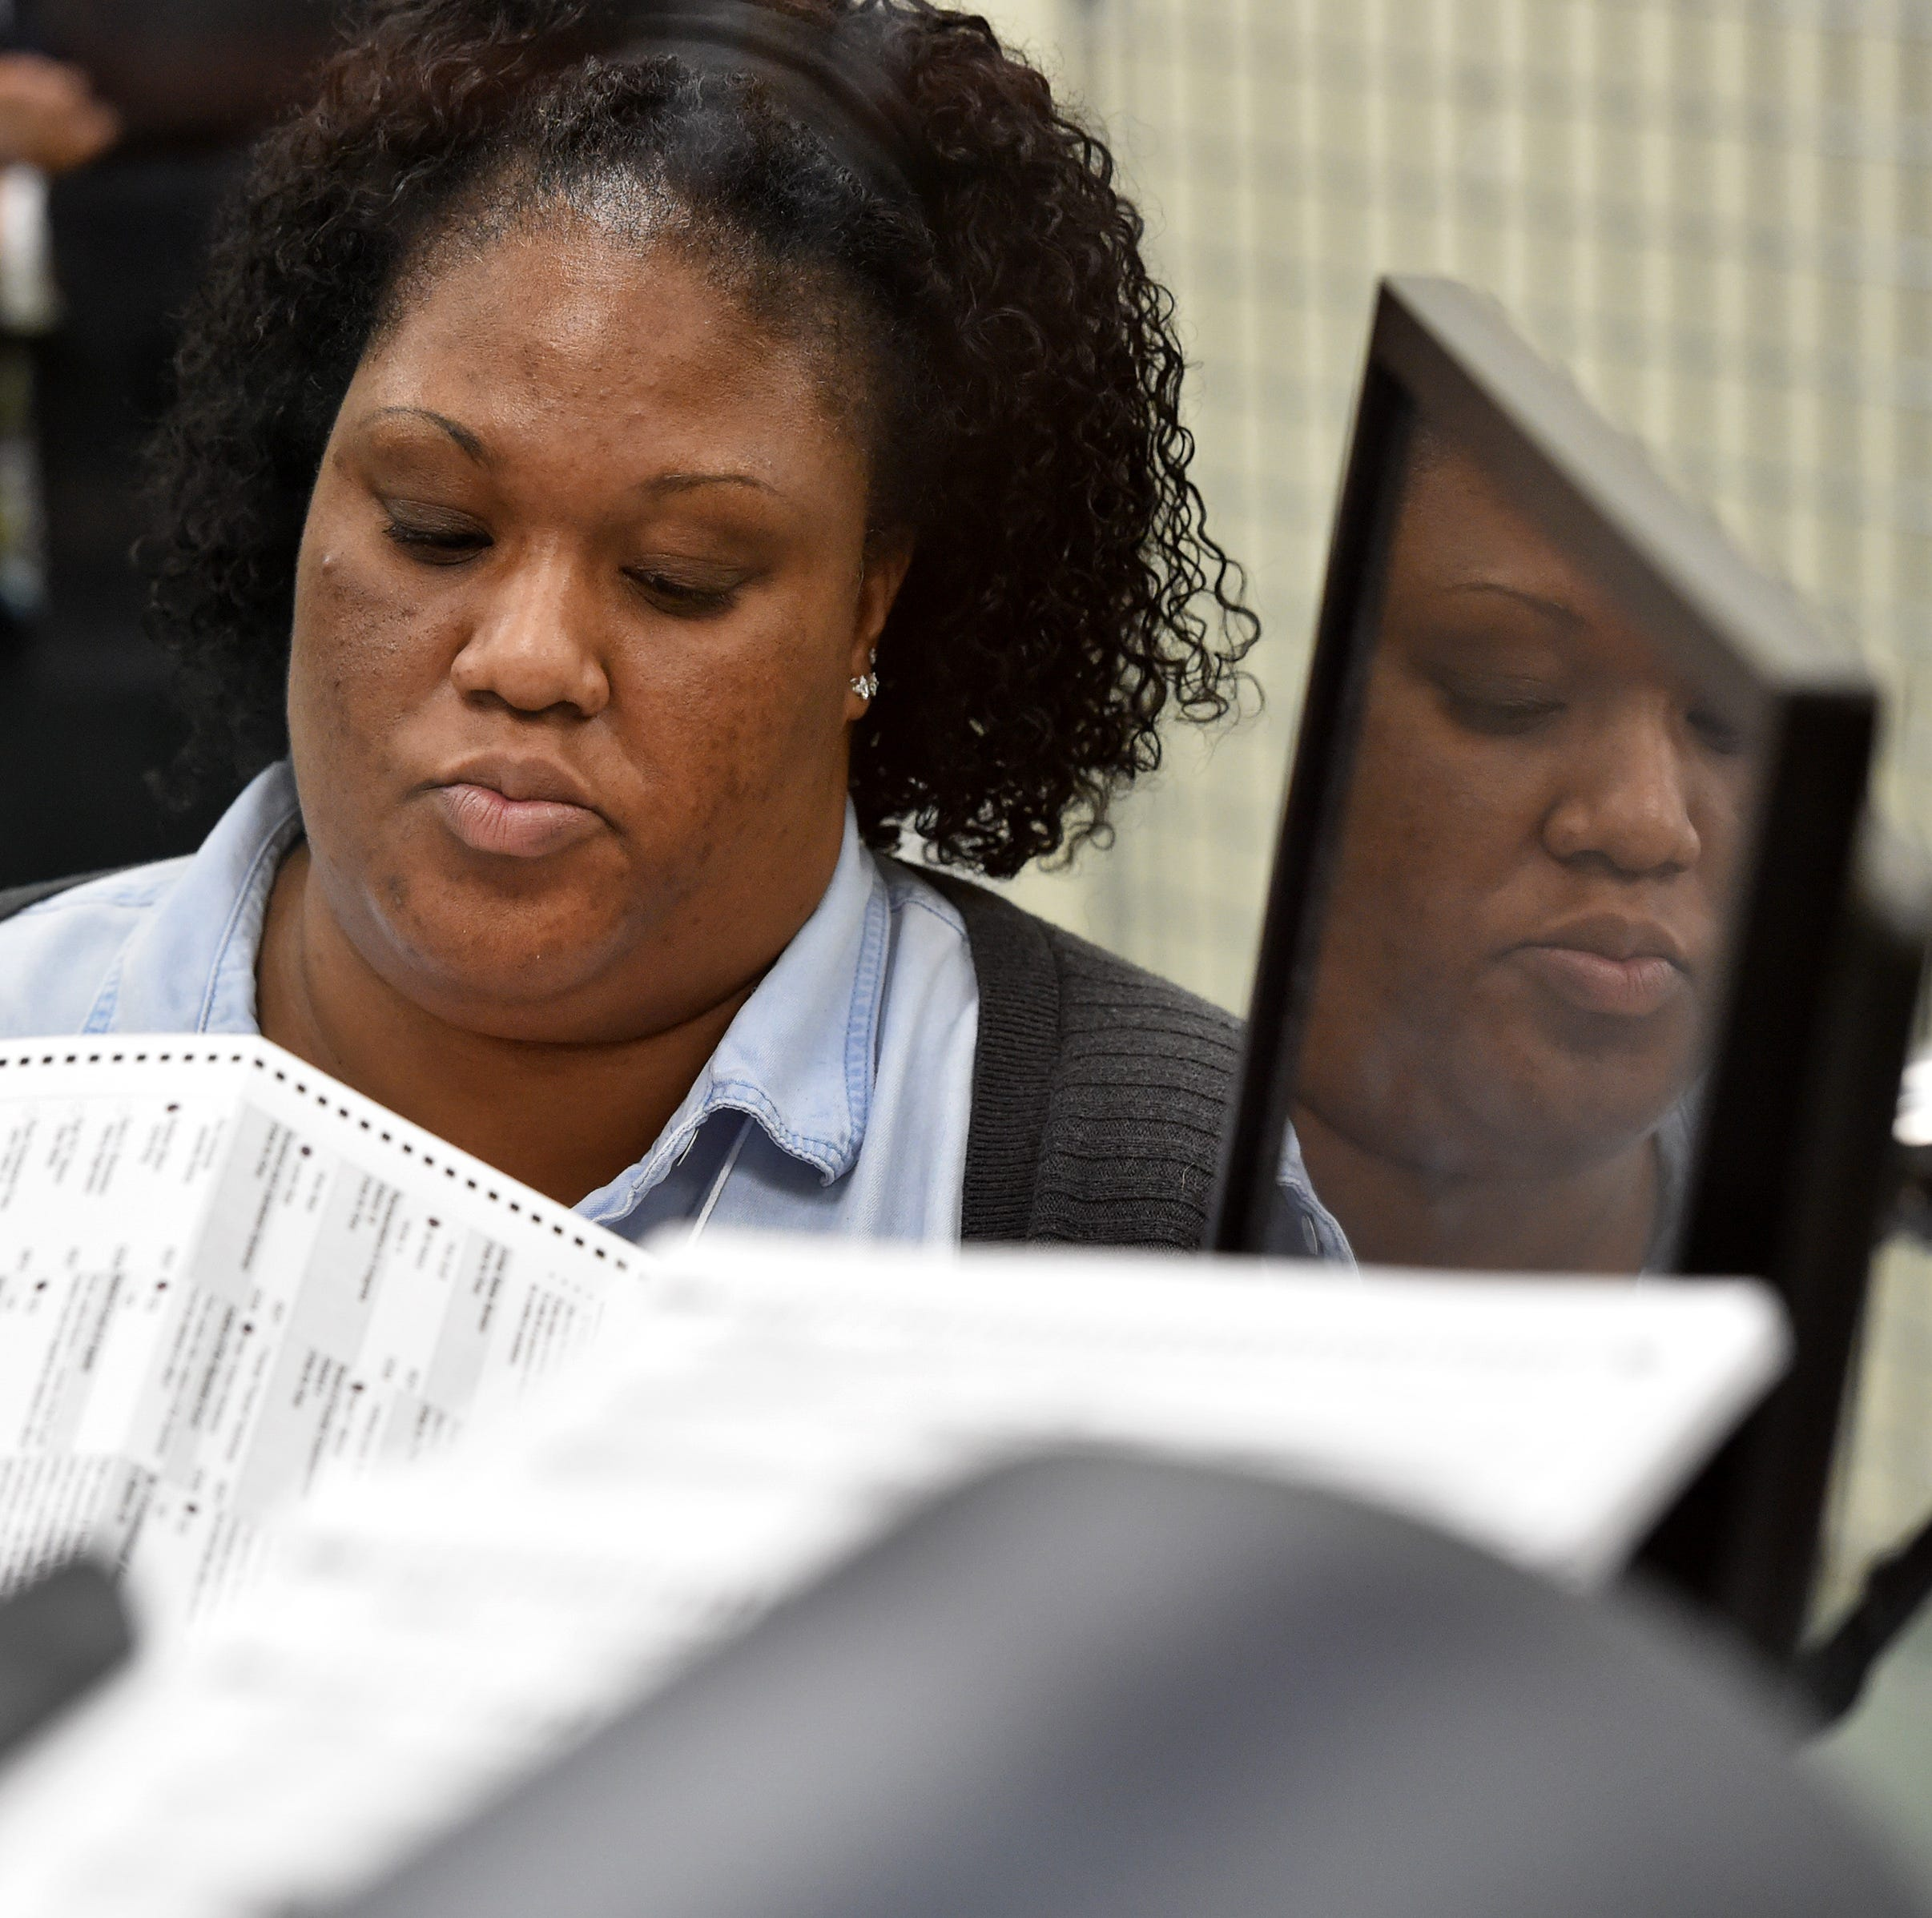 Florida elections recount: St. Lucie County reports very slight changes in statewide races